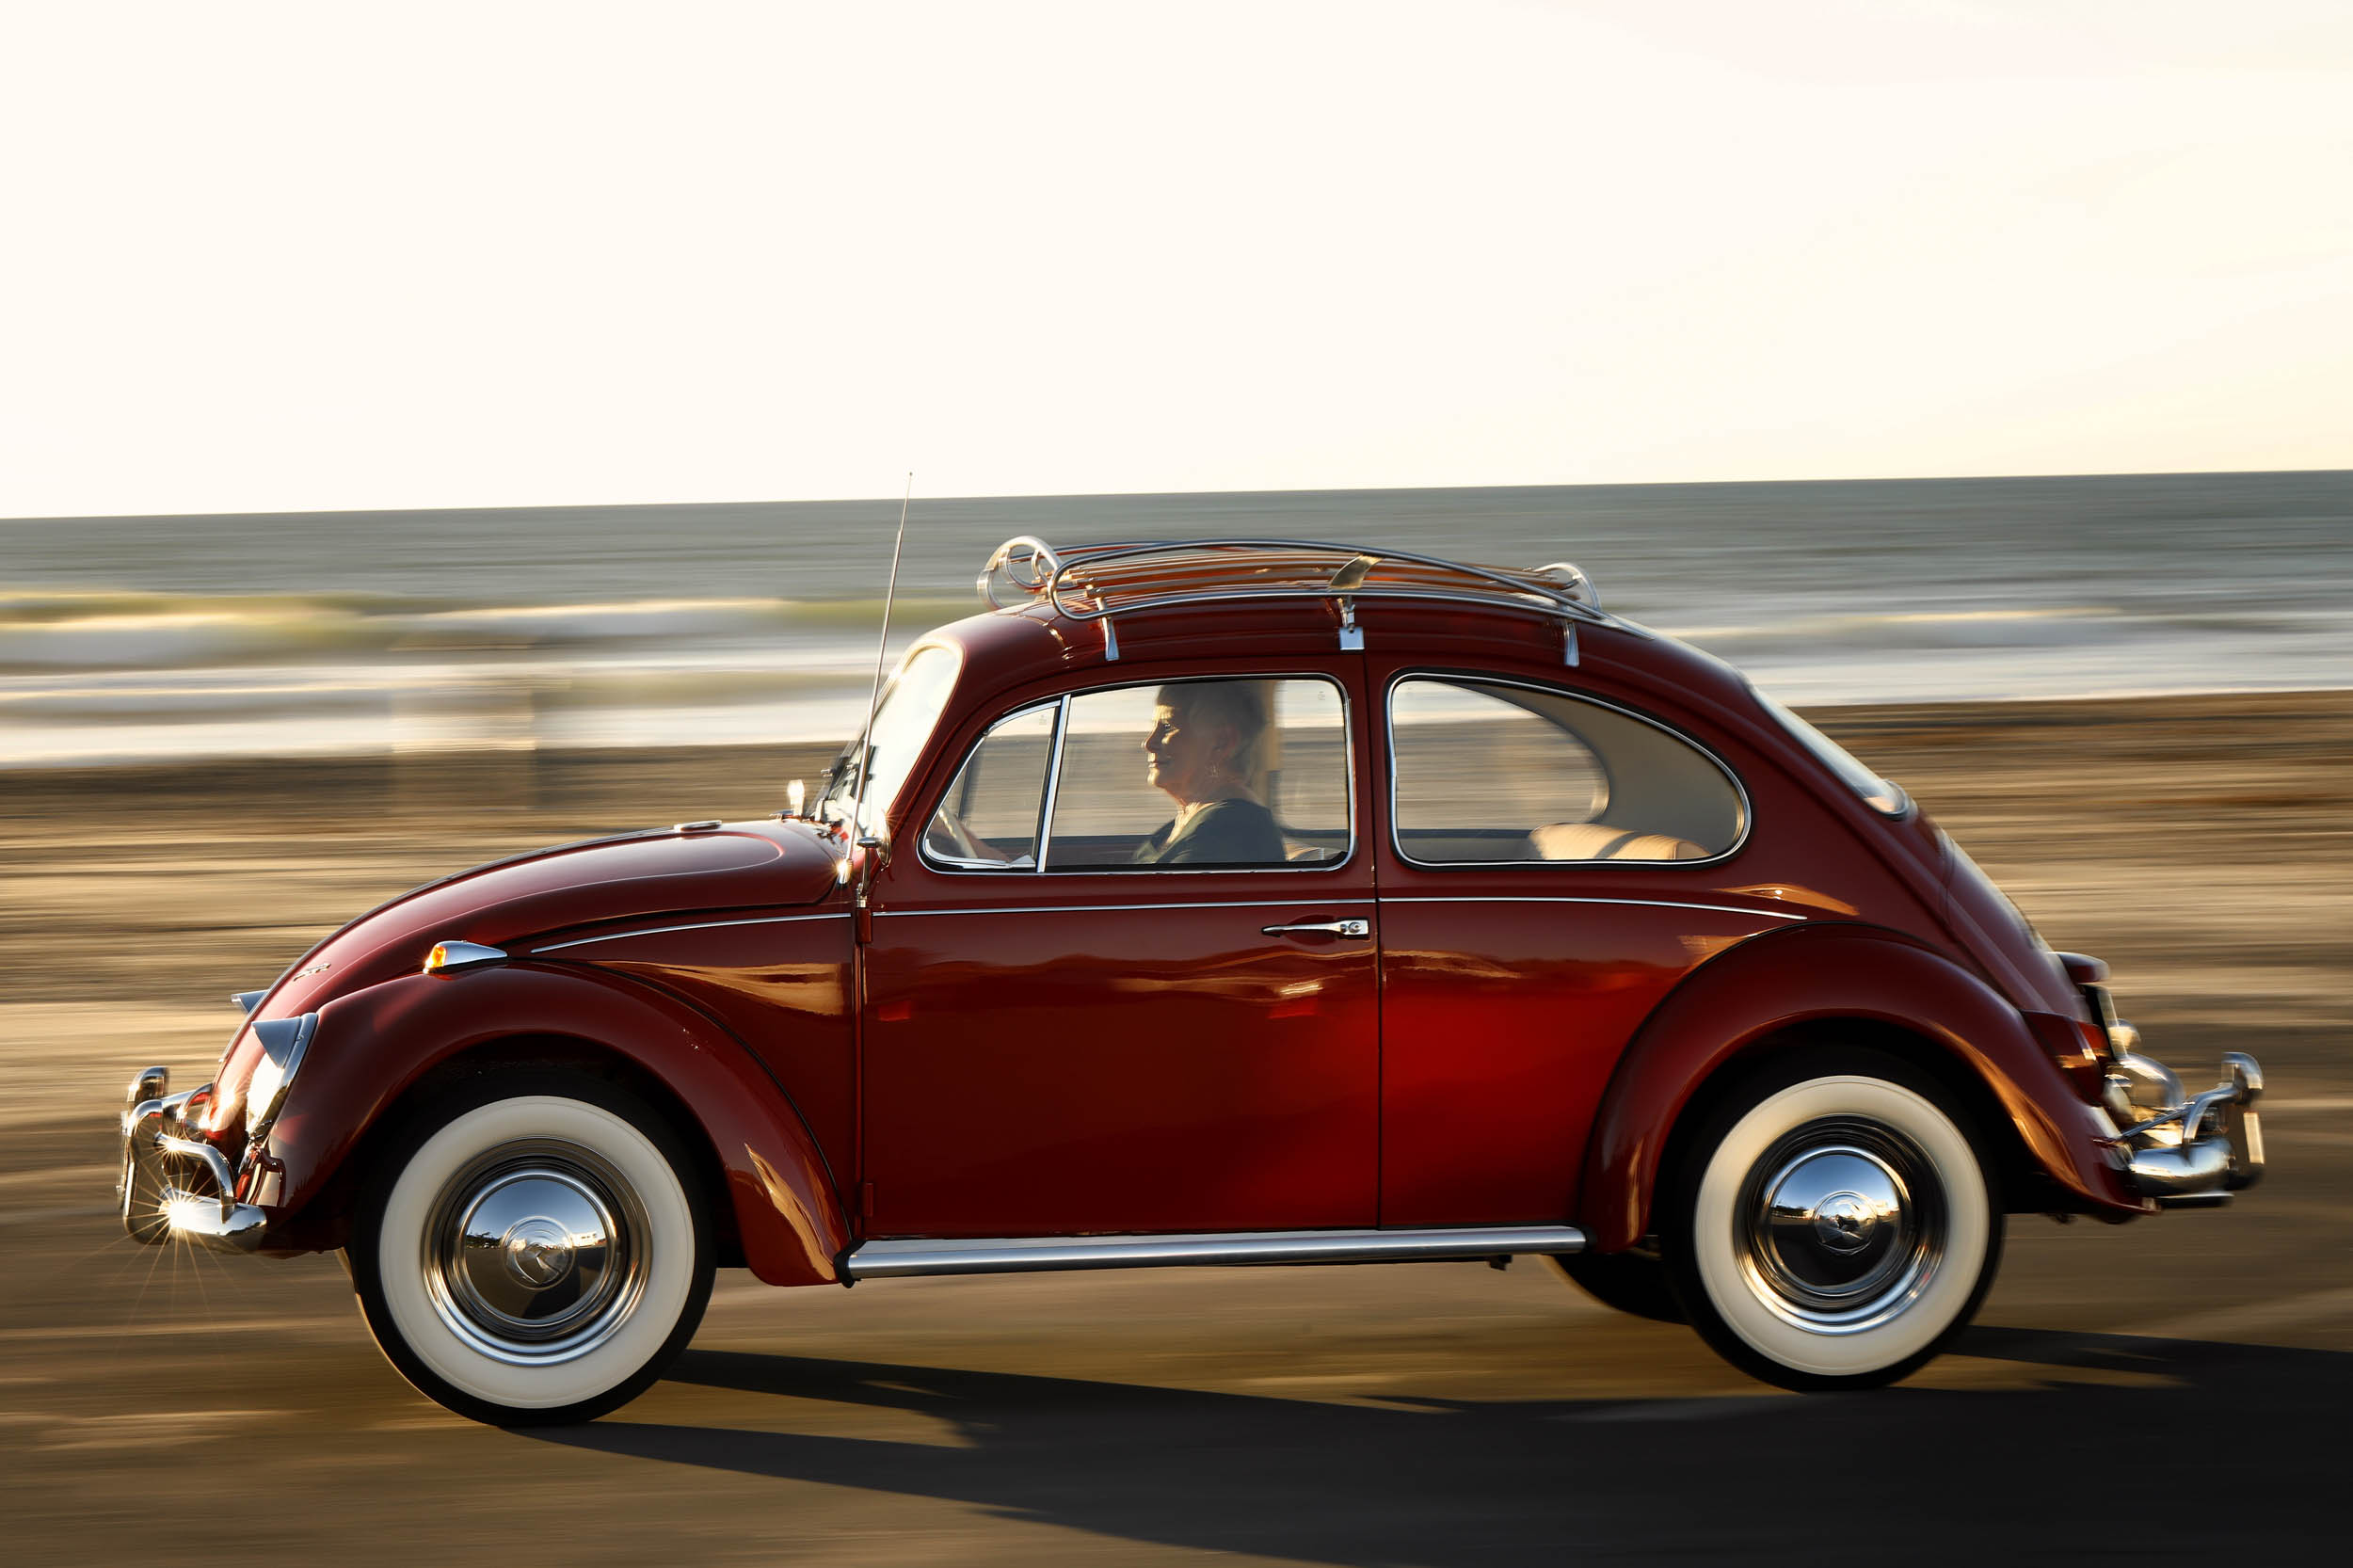 restored 1967 Volkswagen Beetle profile